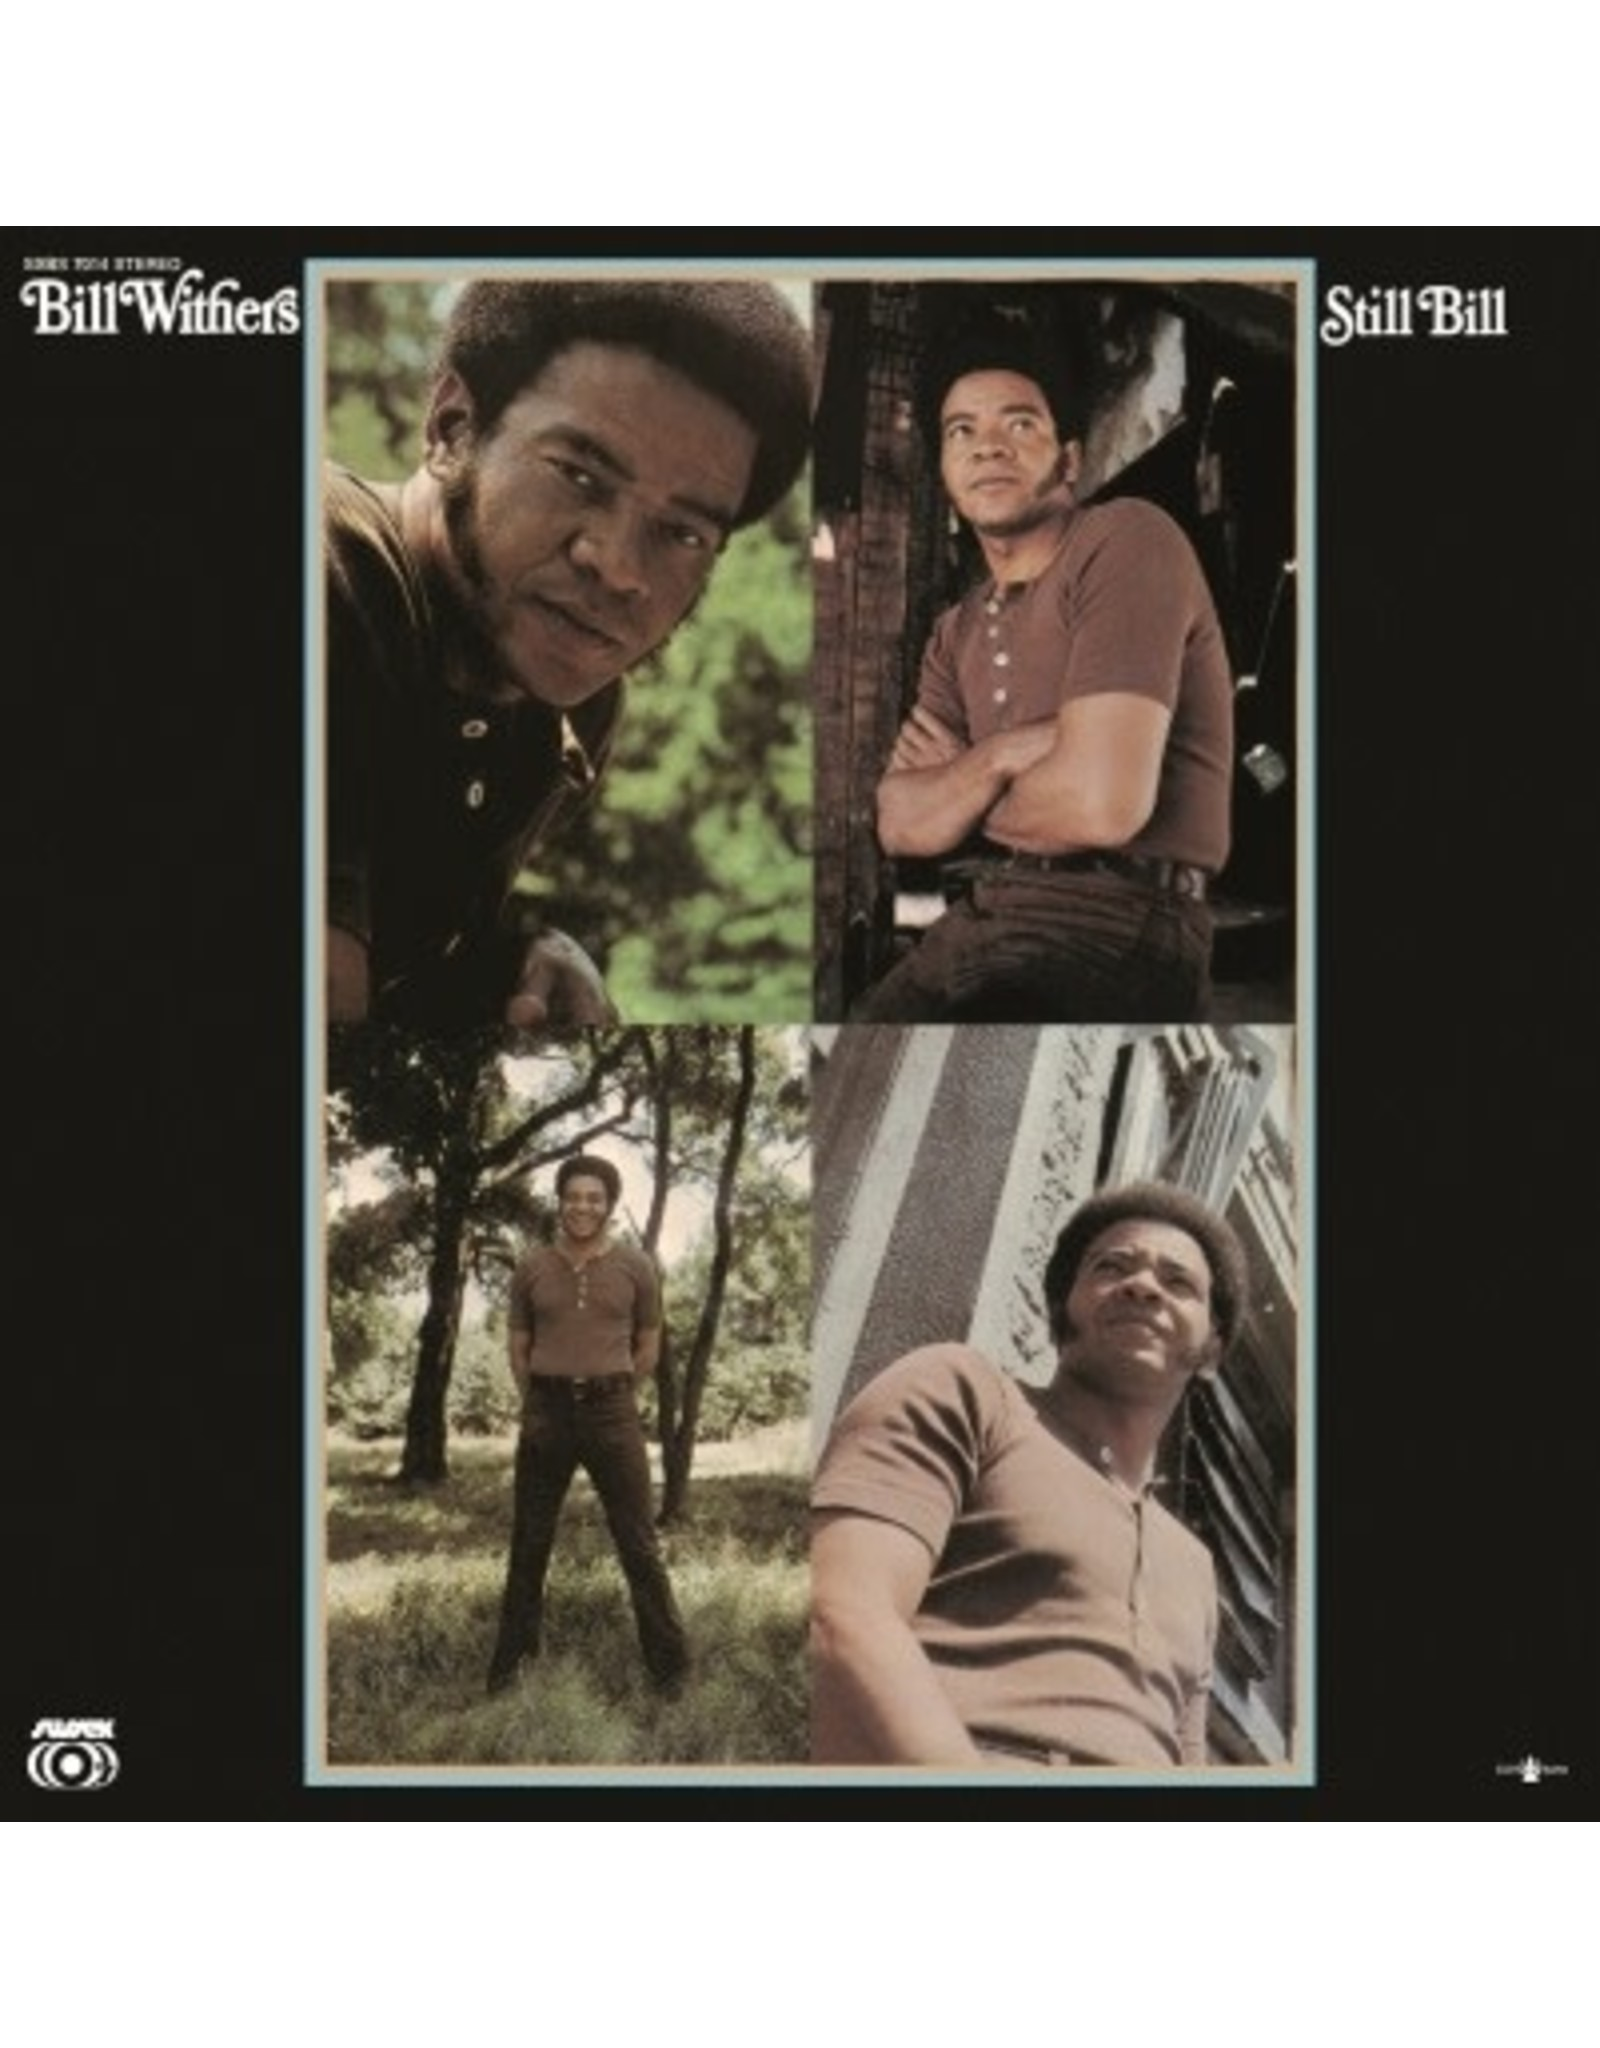 Bill Withers - Still Bill (Music On Vinyl)